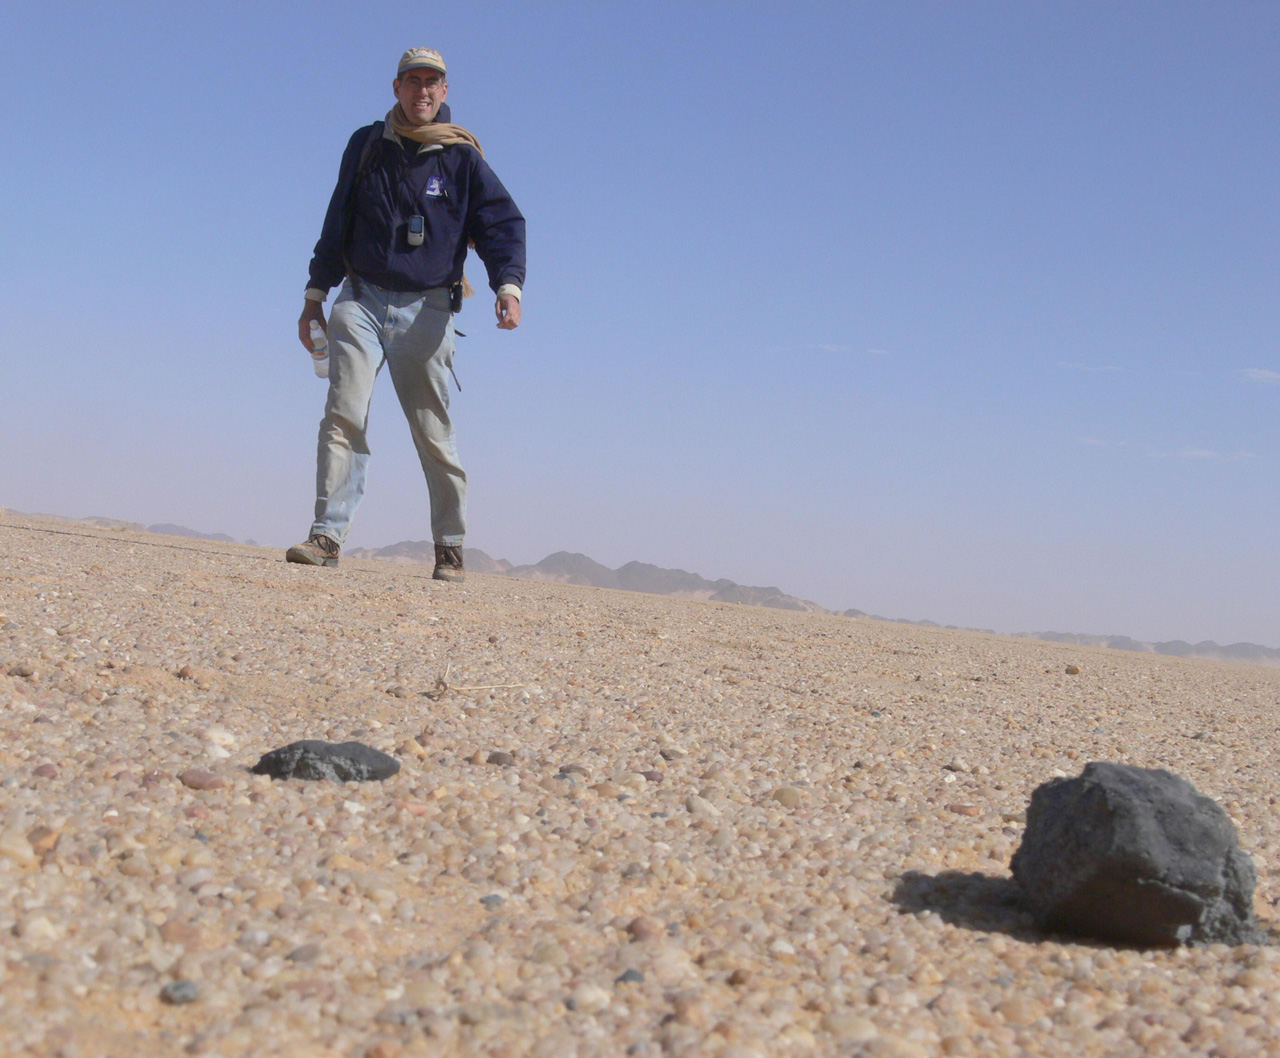 Man standing over small meteorite in desert sand.